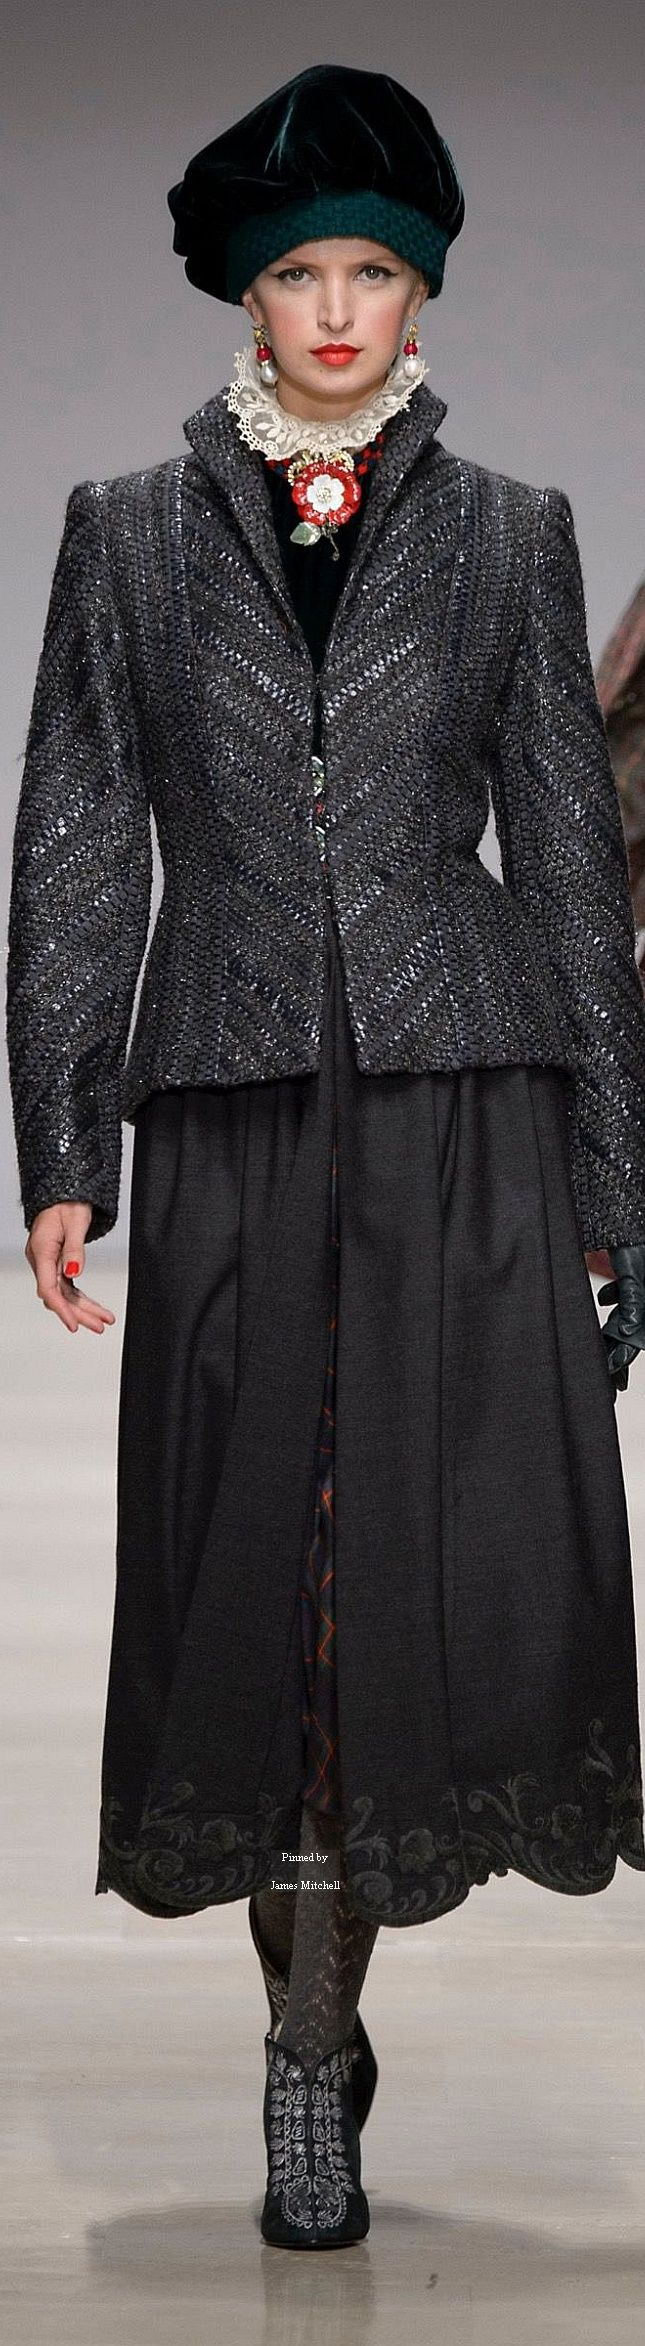 53 Best Raffaella Curiel Couture Images On Pinterest Fashion Women Dream Dress And Fall